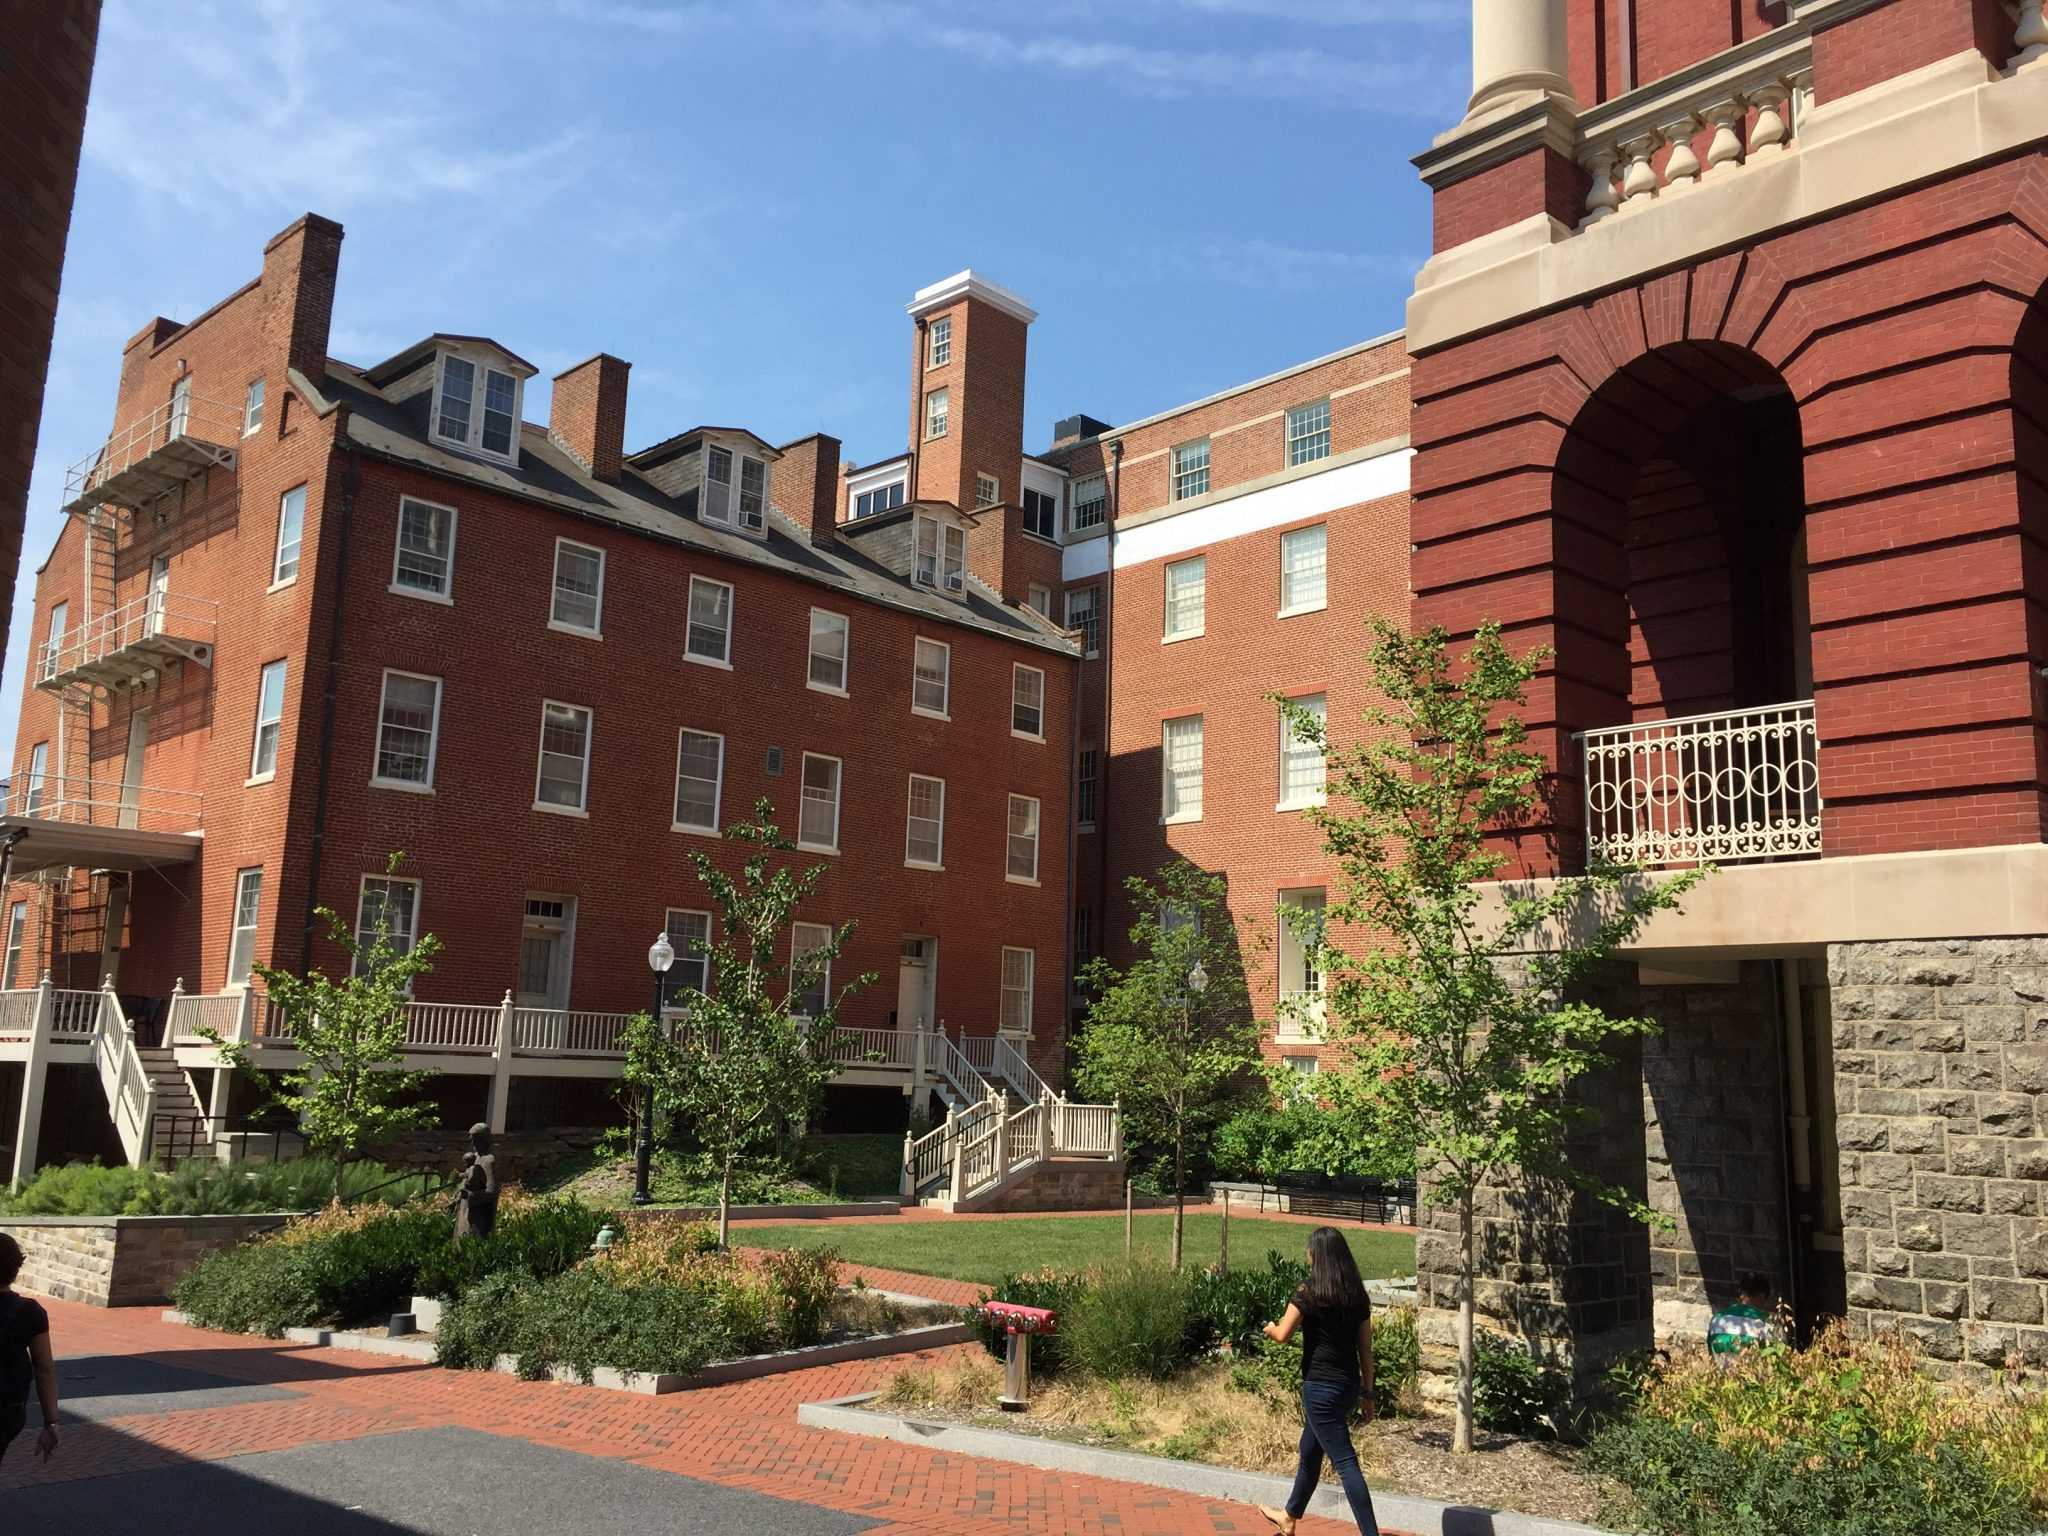 Large red brick building on college campus